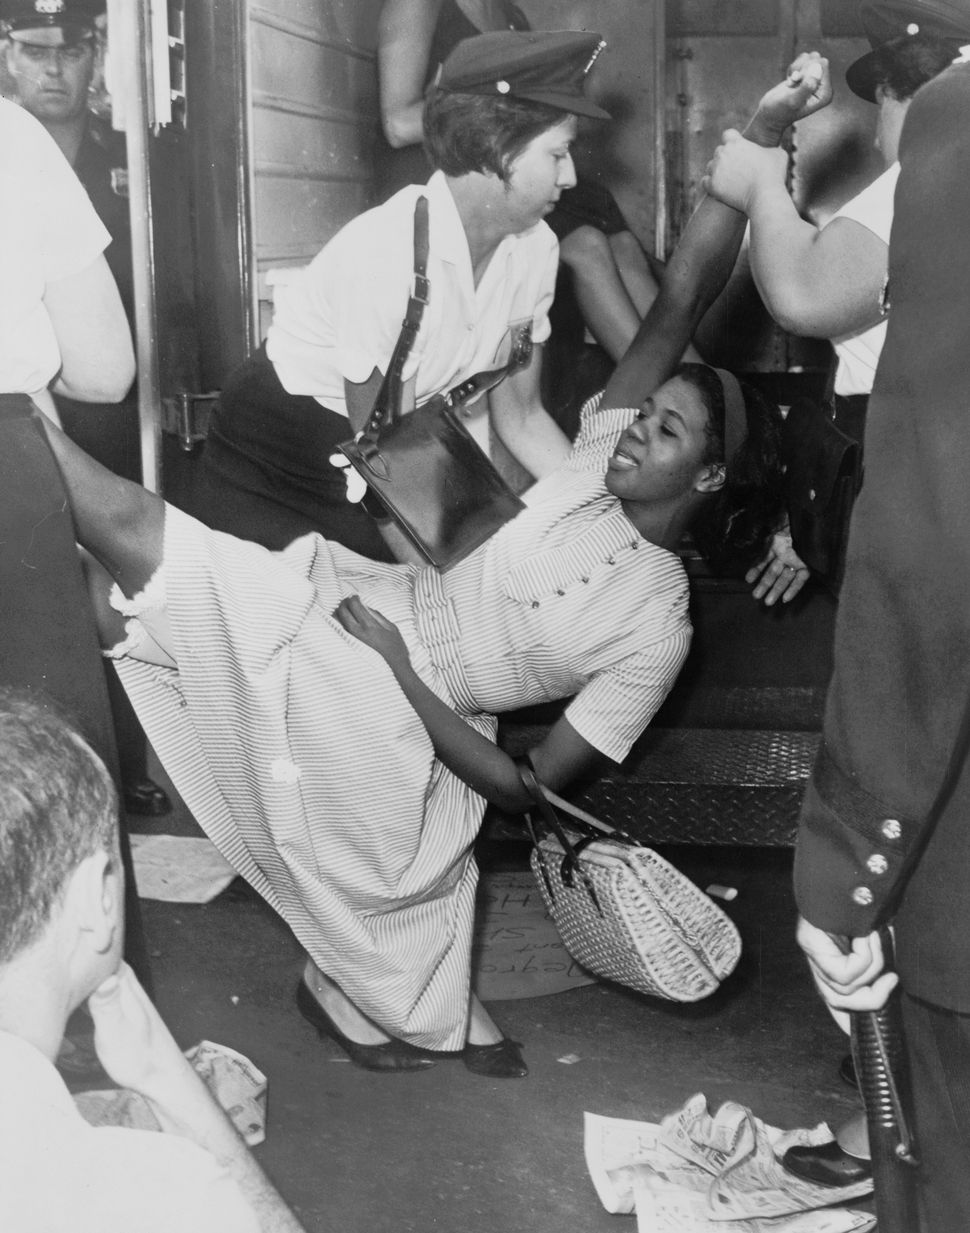 African American woman being carried to police patrol wagon during demonstration in Brooklyn, New York circa 1963.